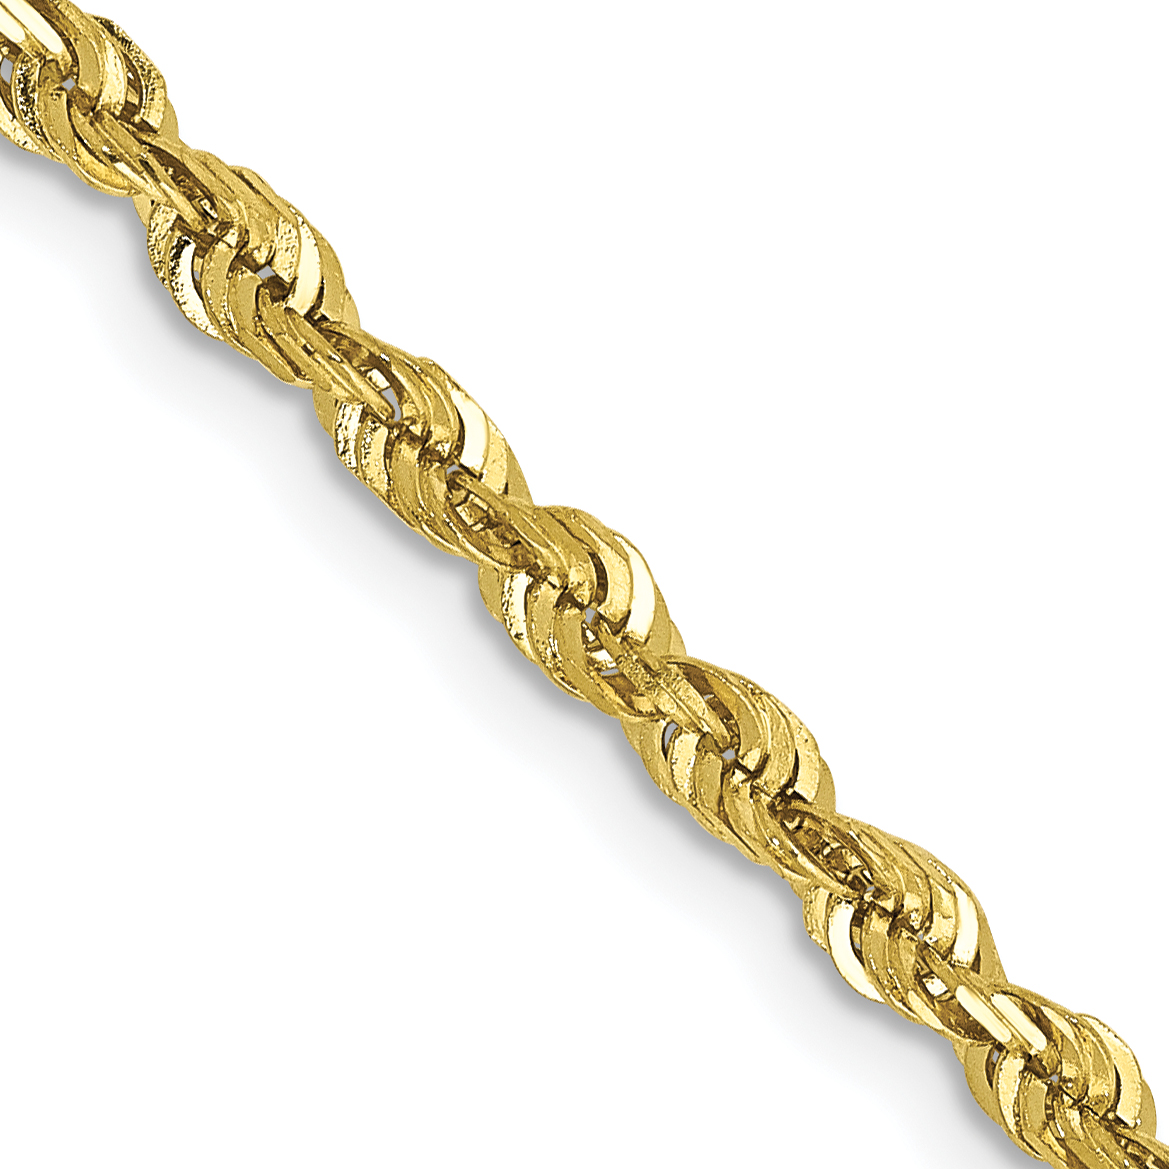 10k 2.75mm D/C Extra-Lite Rope Chain. Weight: 7.63,  Length: 18